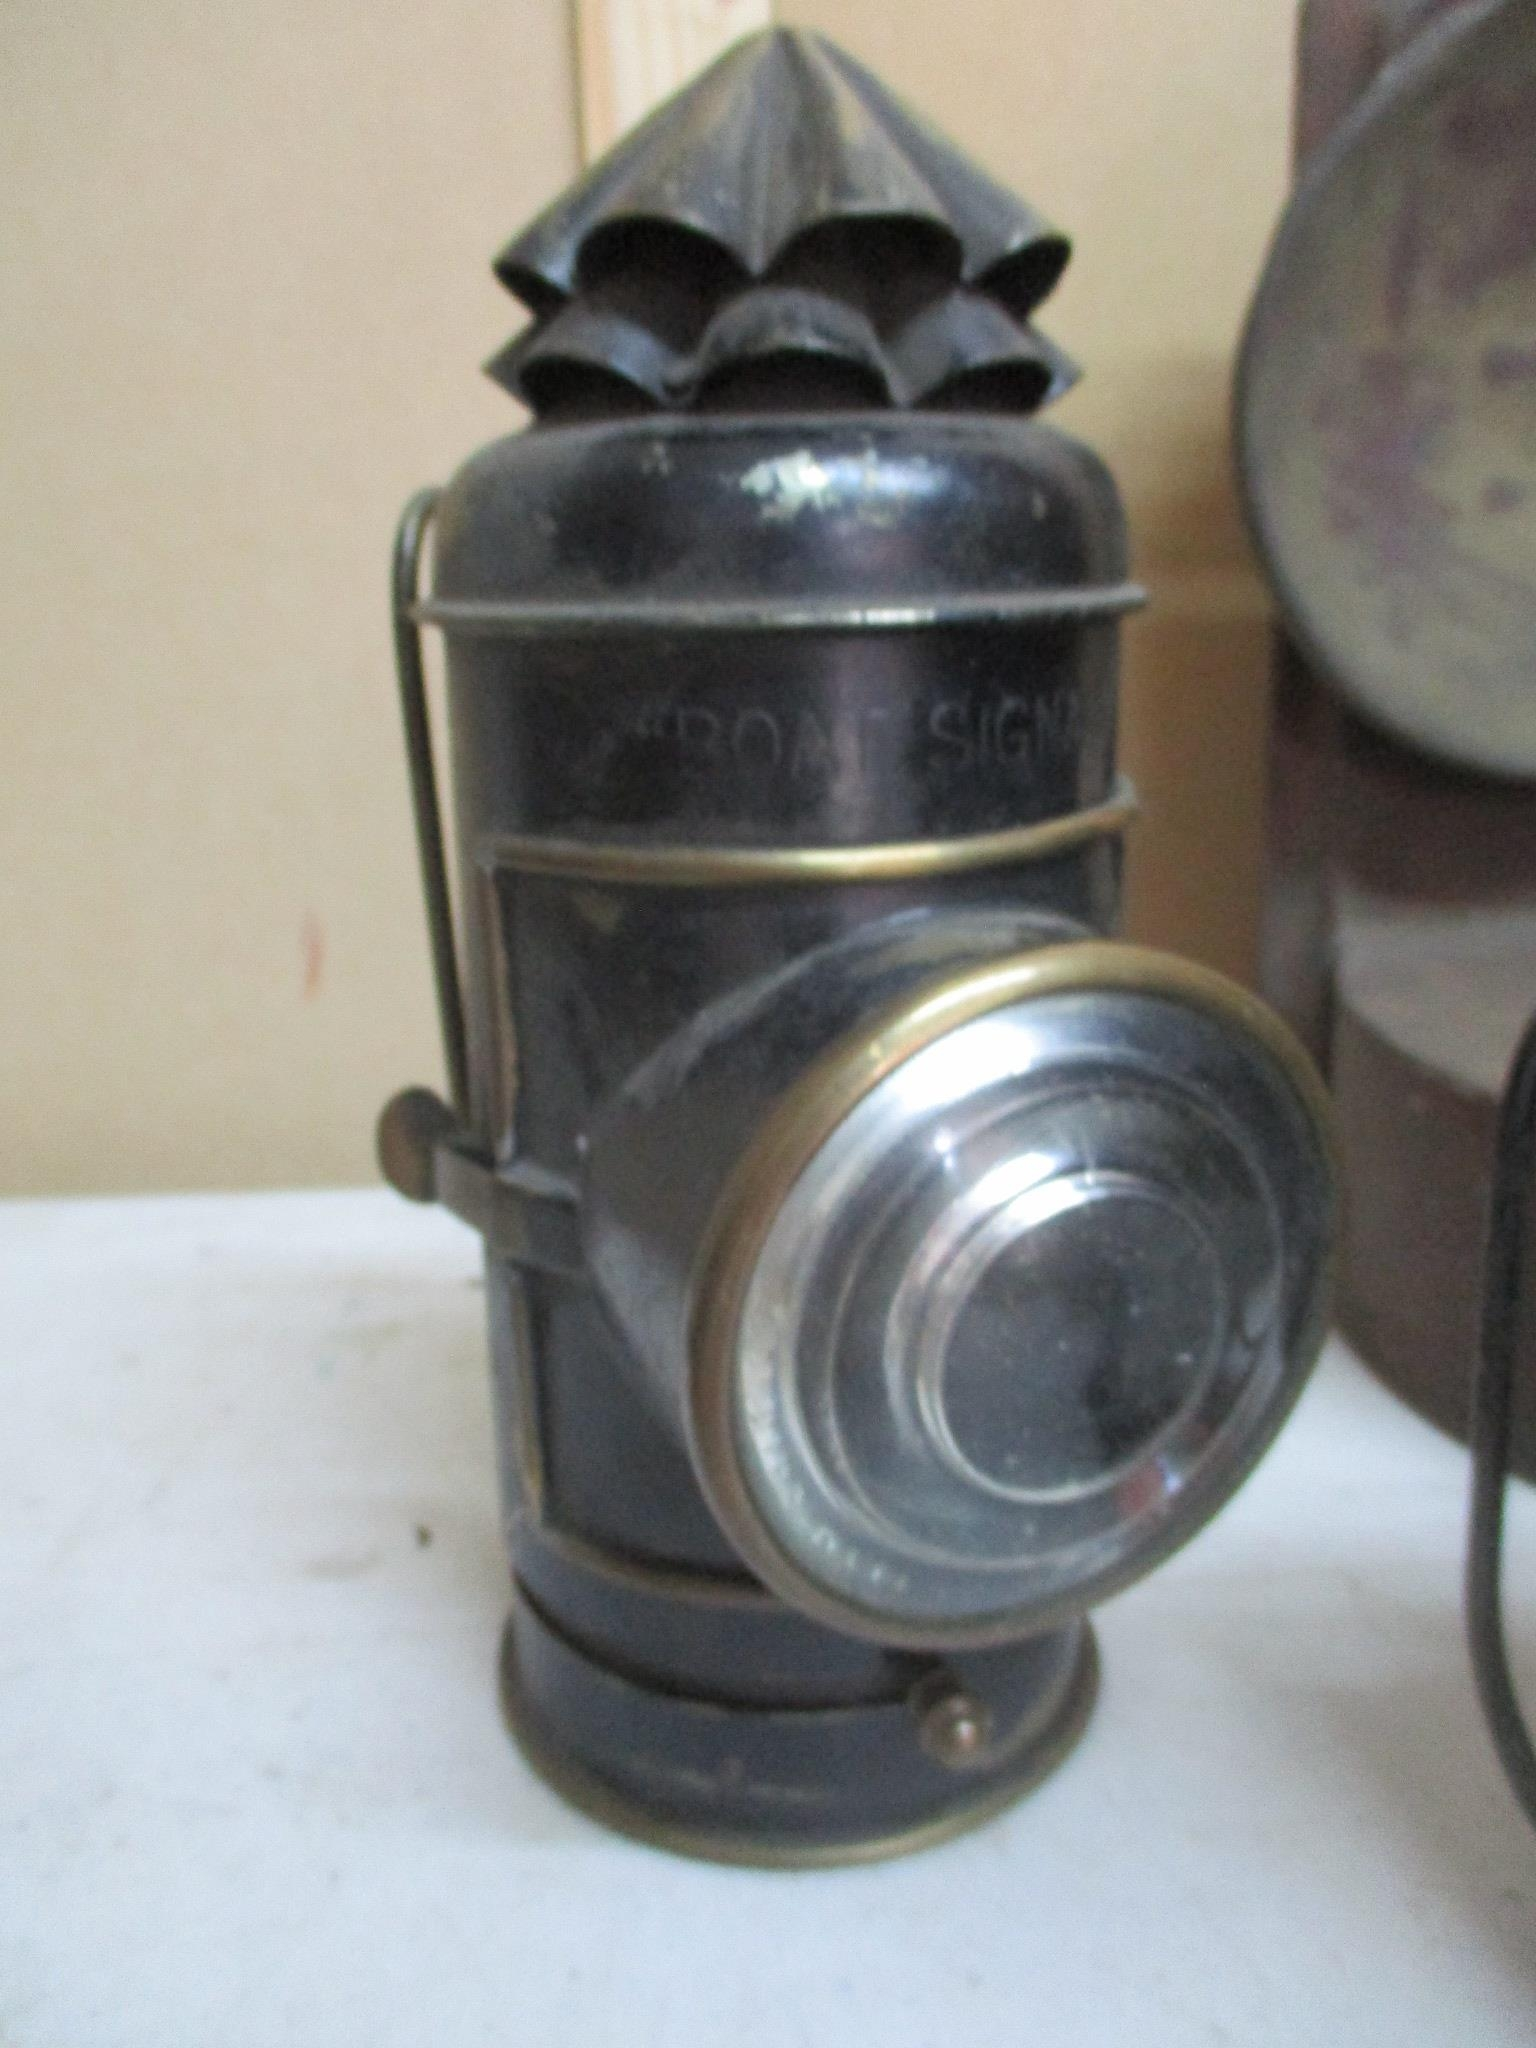 A group of 19th century and later lamps to include a Perko boat signal lamp by the Perkins Marine - Image 2 of 4